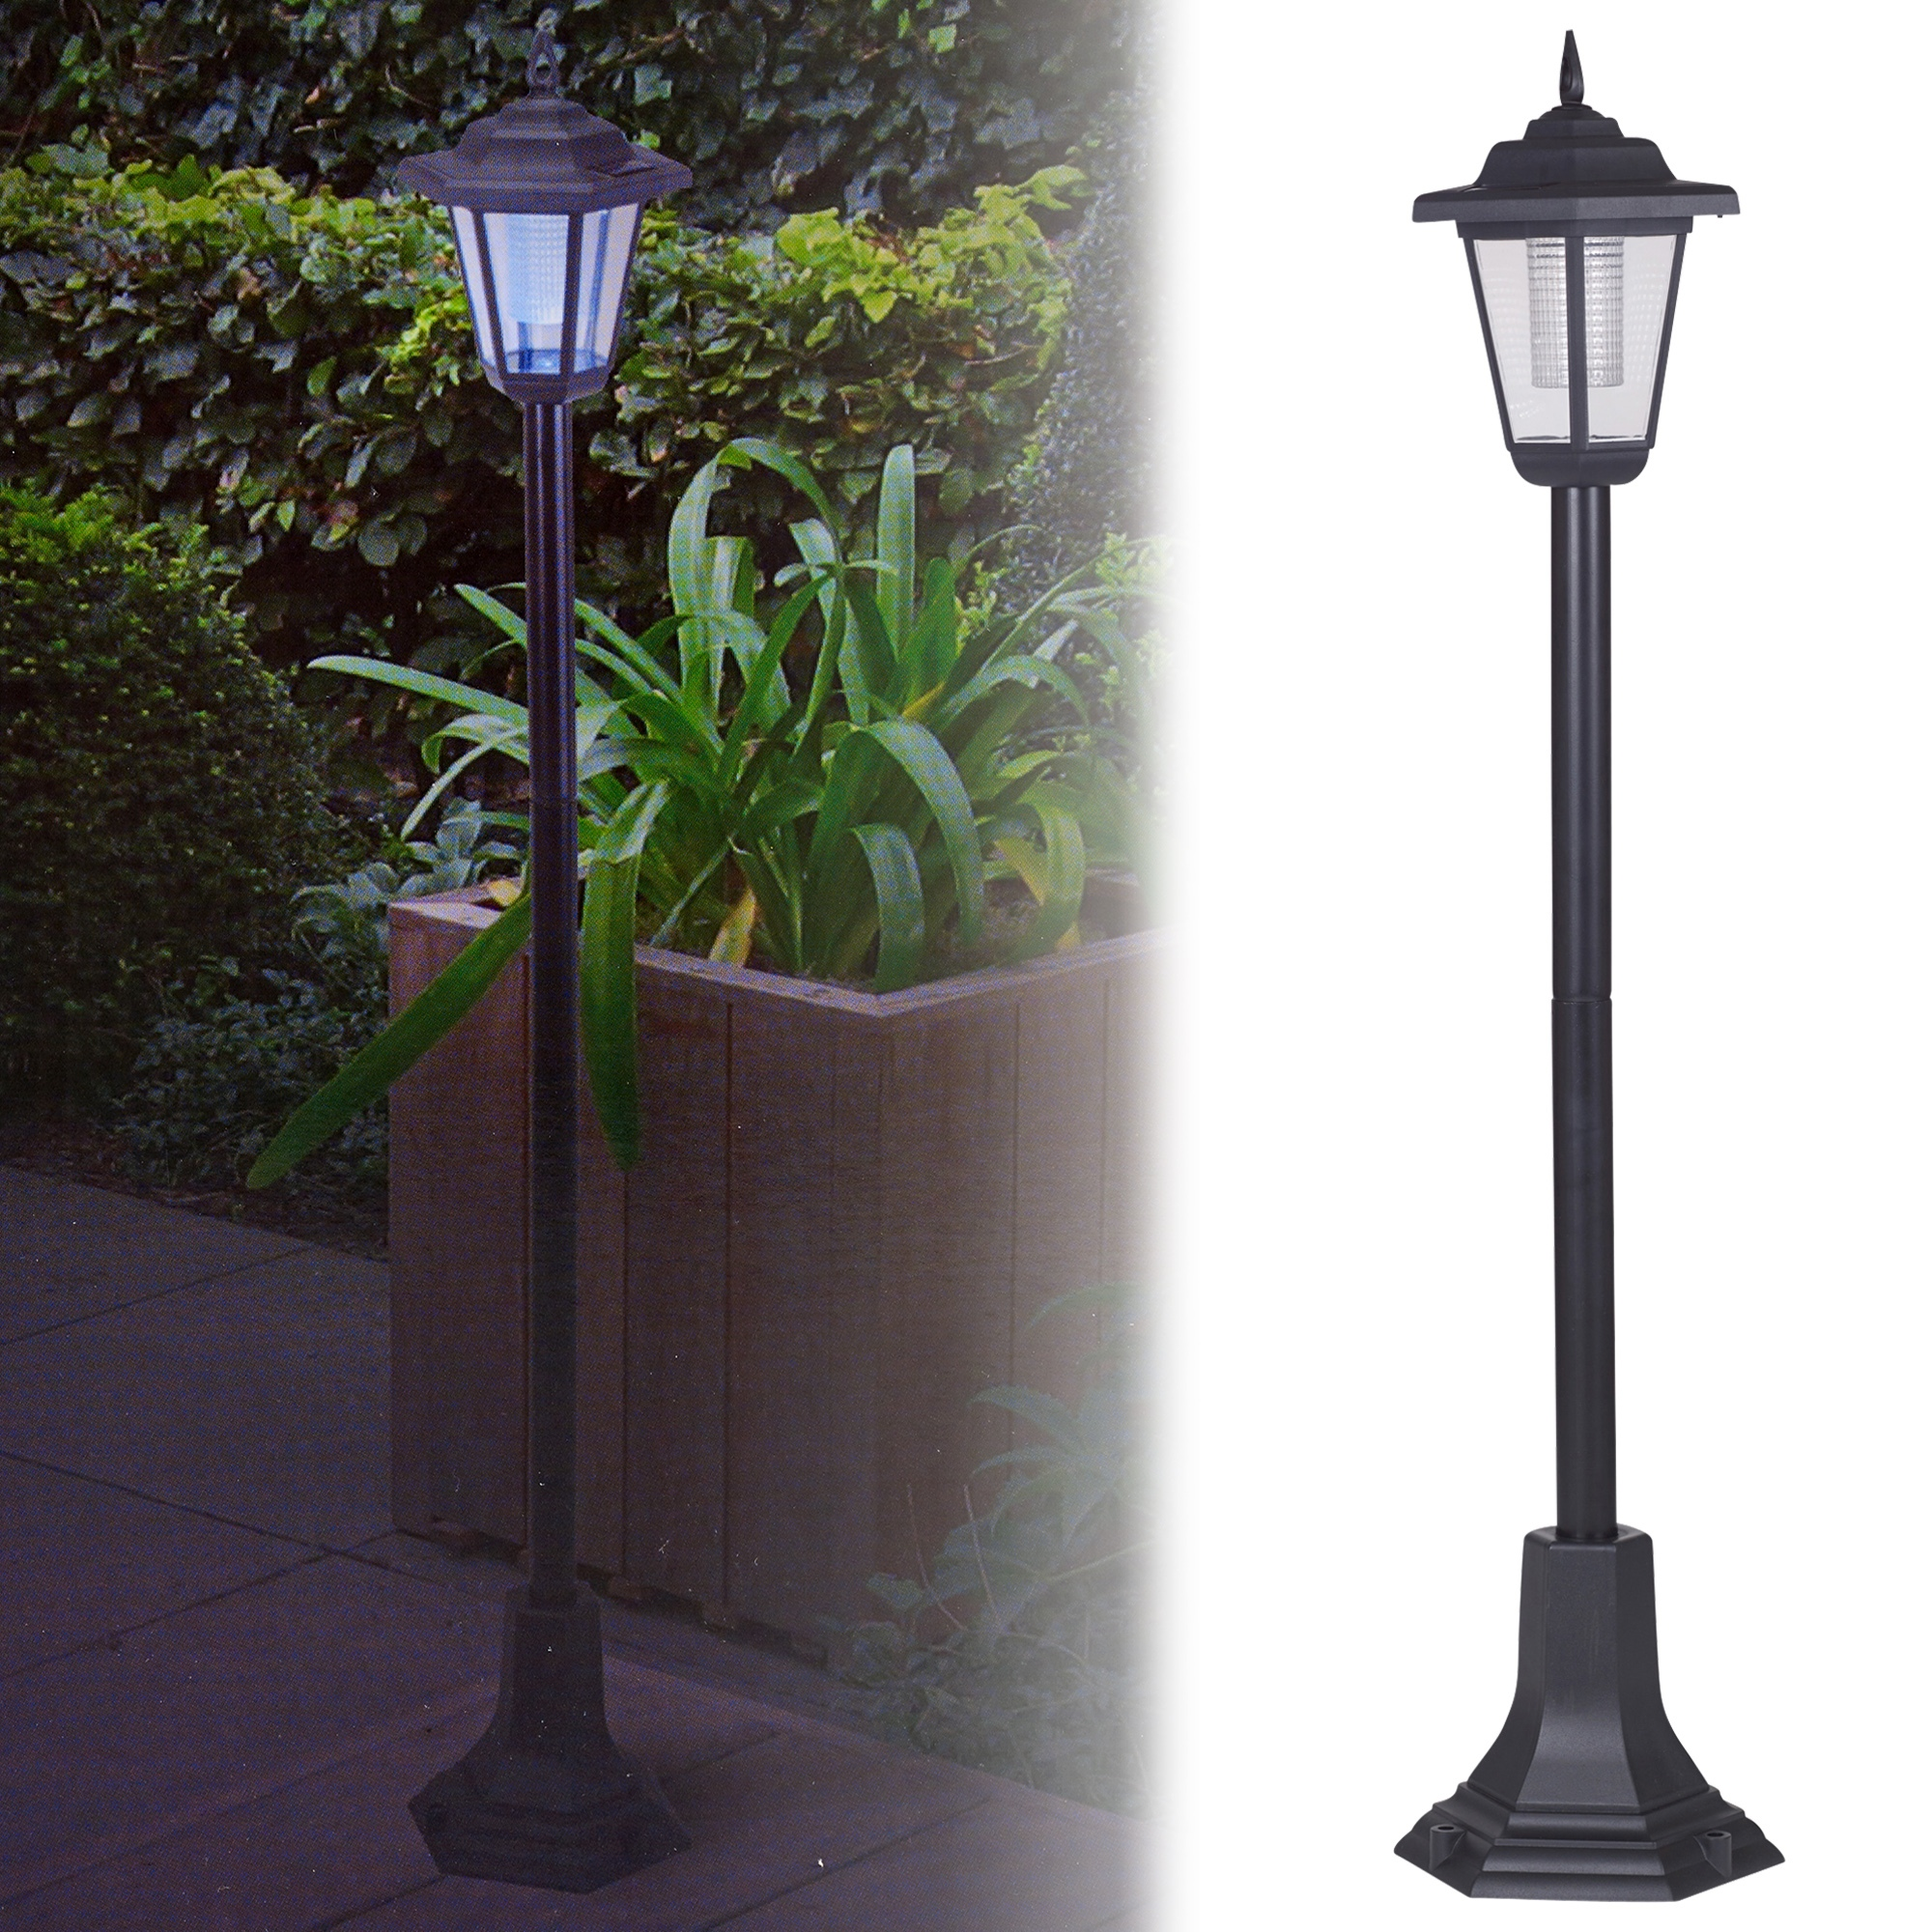 Solar Powered Garden Lights Lantern Lamp Black LED Pathway Driveway Outdoor P